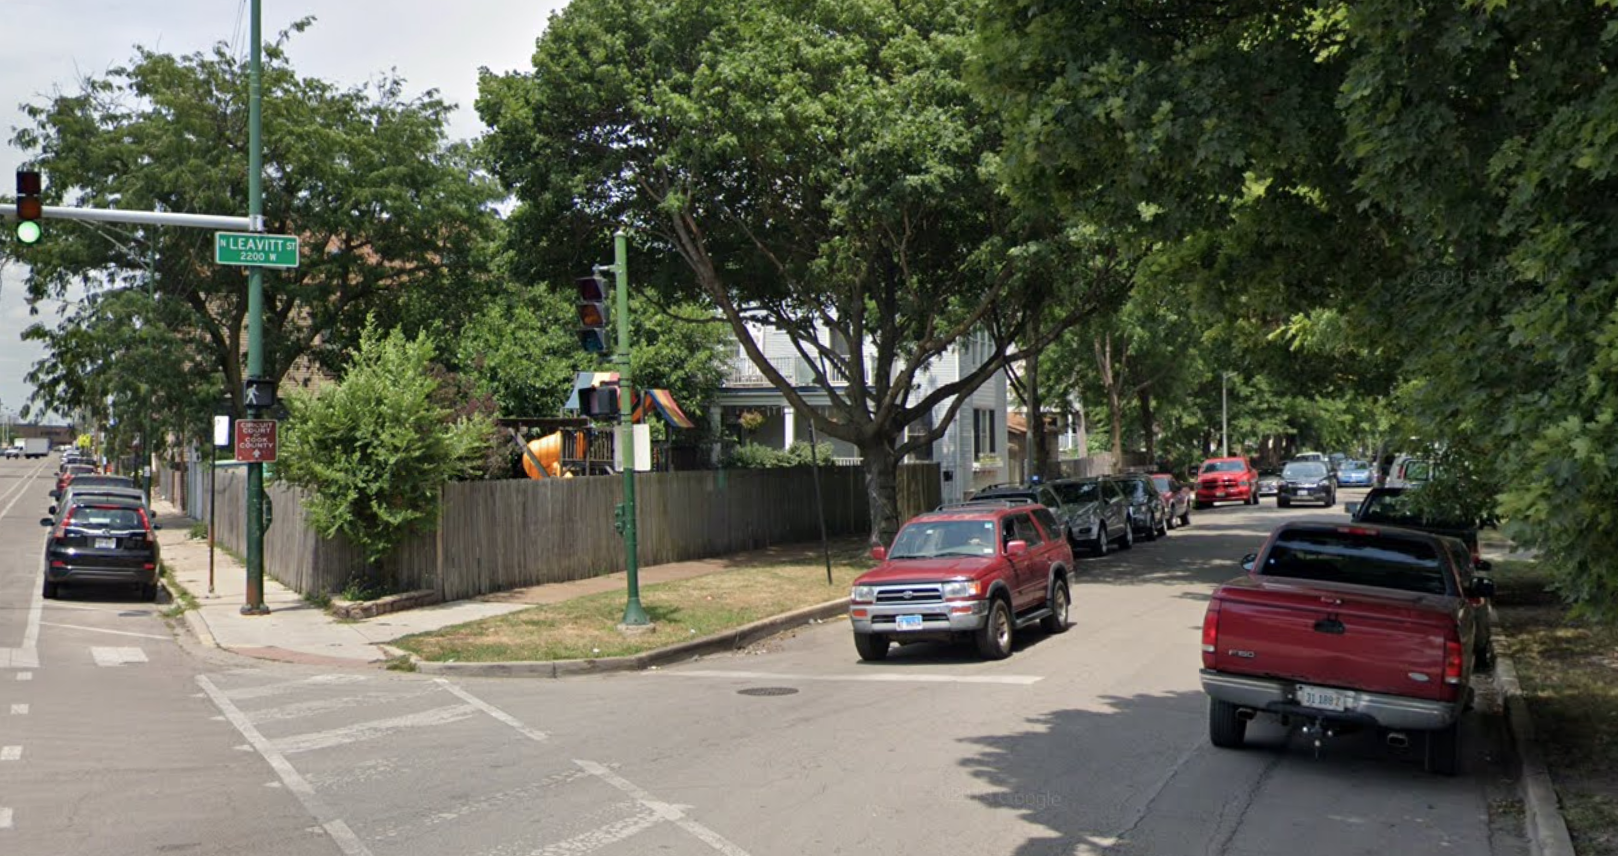 Police are looking for a man who tried to lure a 13-year-old boy to a car June 14, 2020, in the 3000 block of North Leavitt Street.